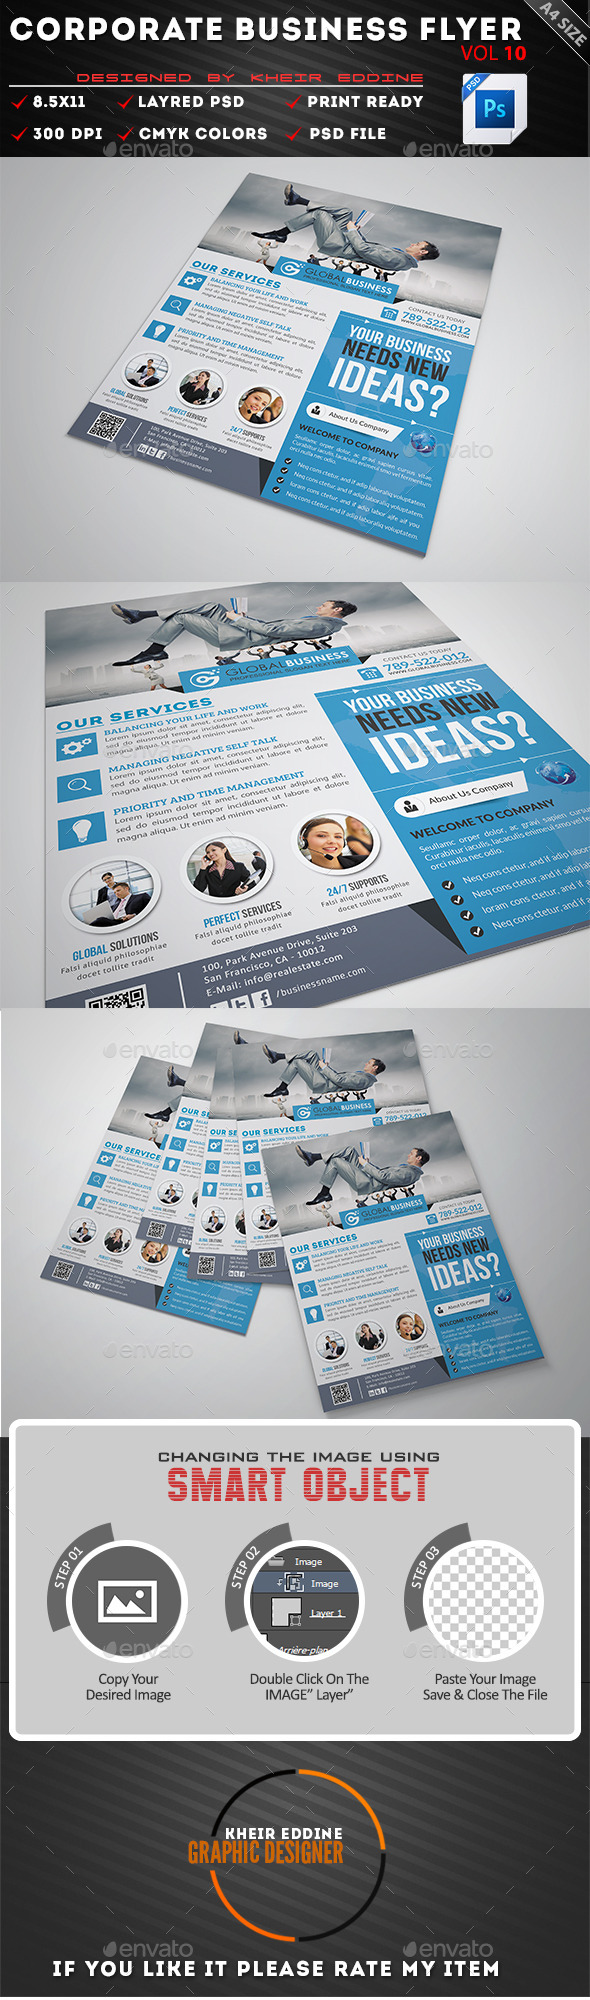 GraphicRiver Corporate Business Flyer Vol 10 11444038